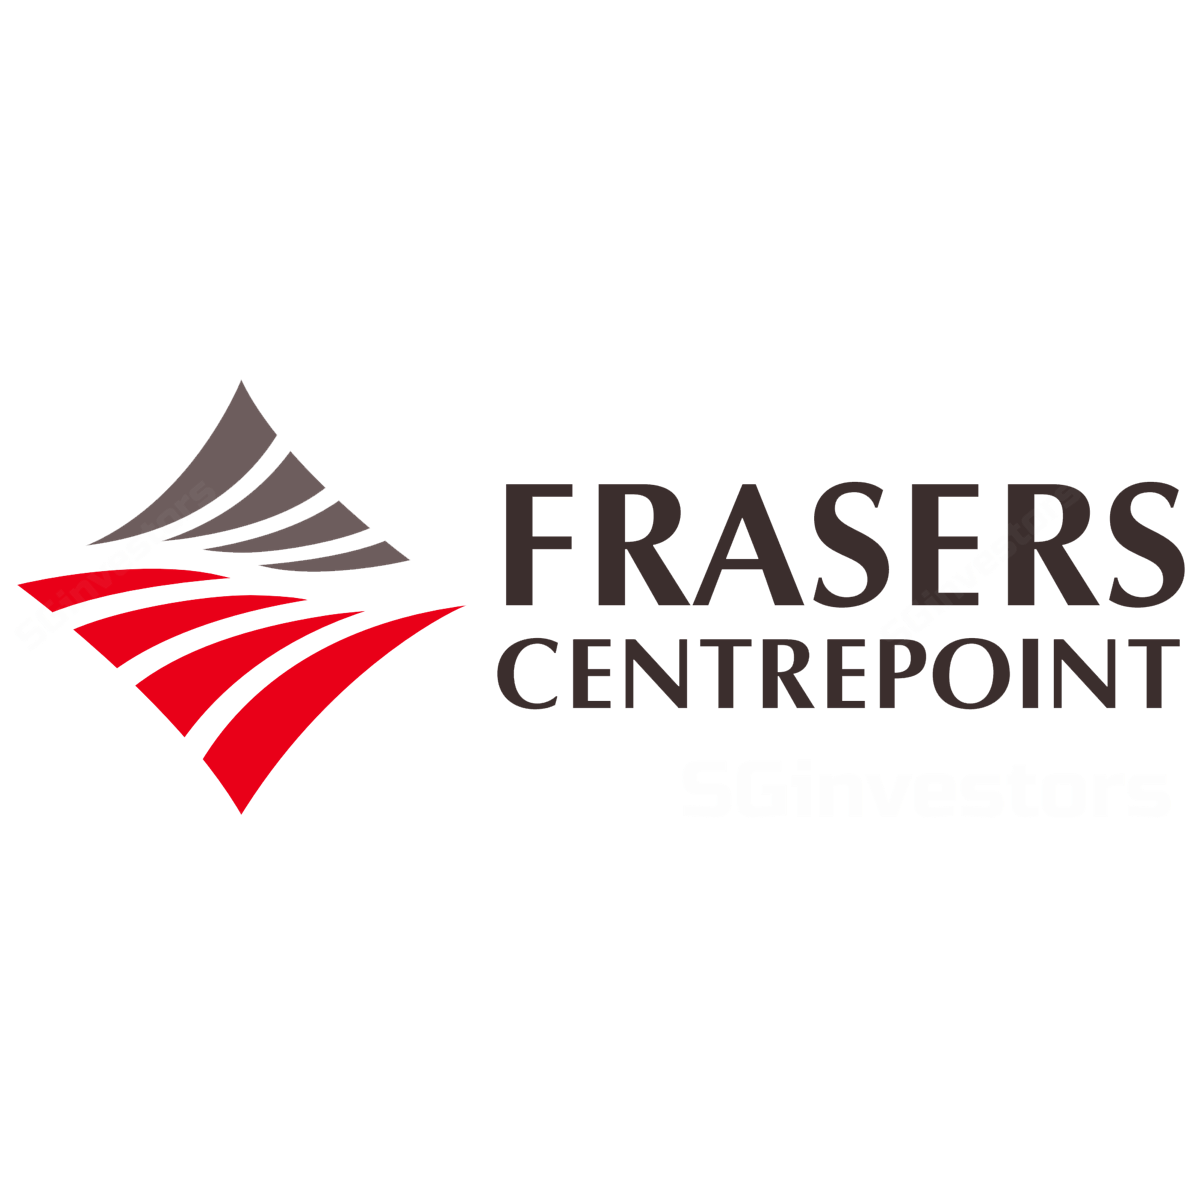 Frasers Centrepoint Ltd - DBS Vickers 2017-04-07: Timely home run